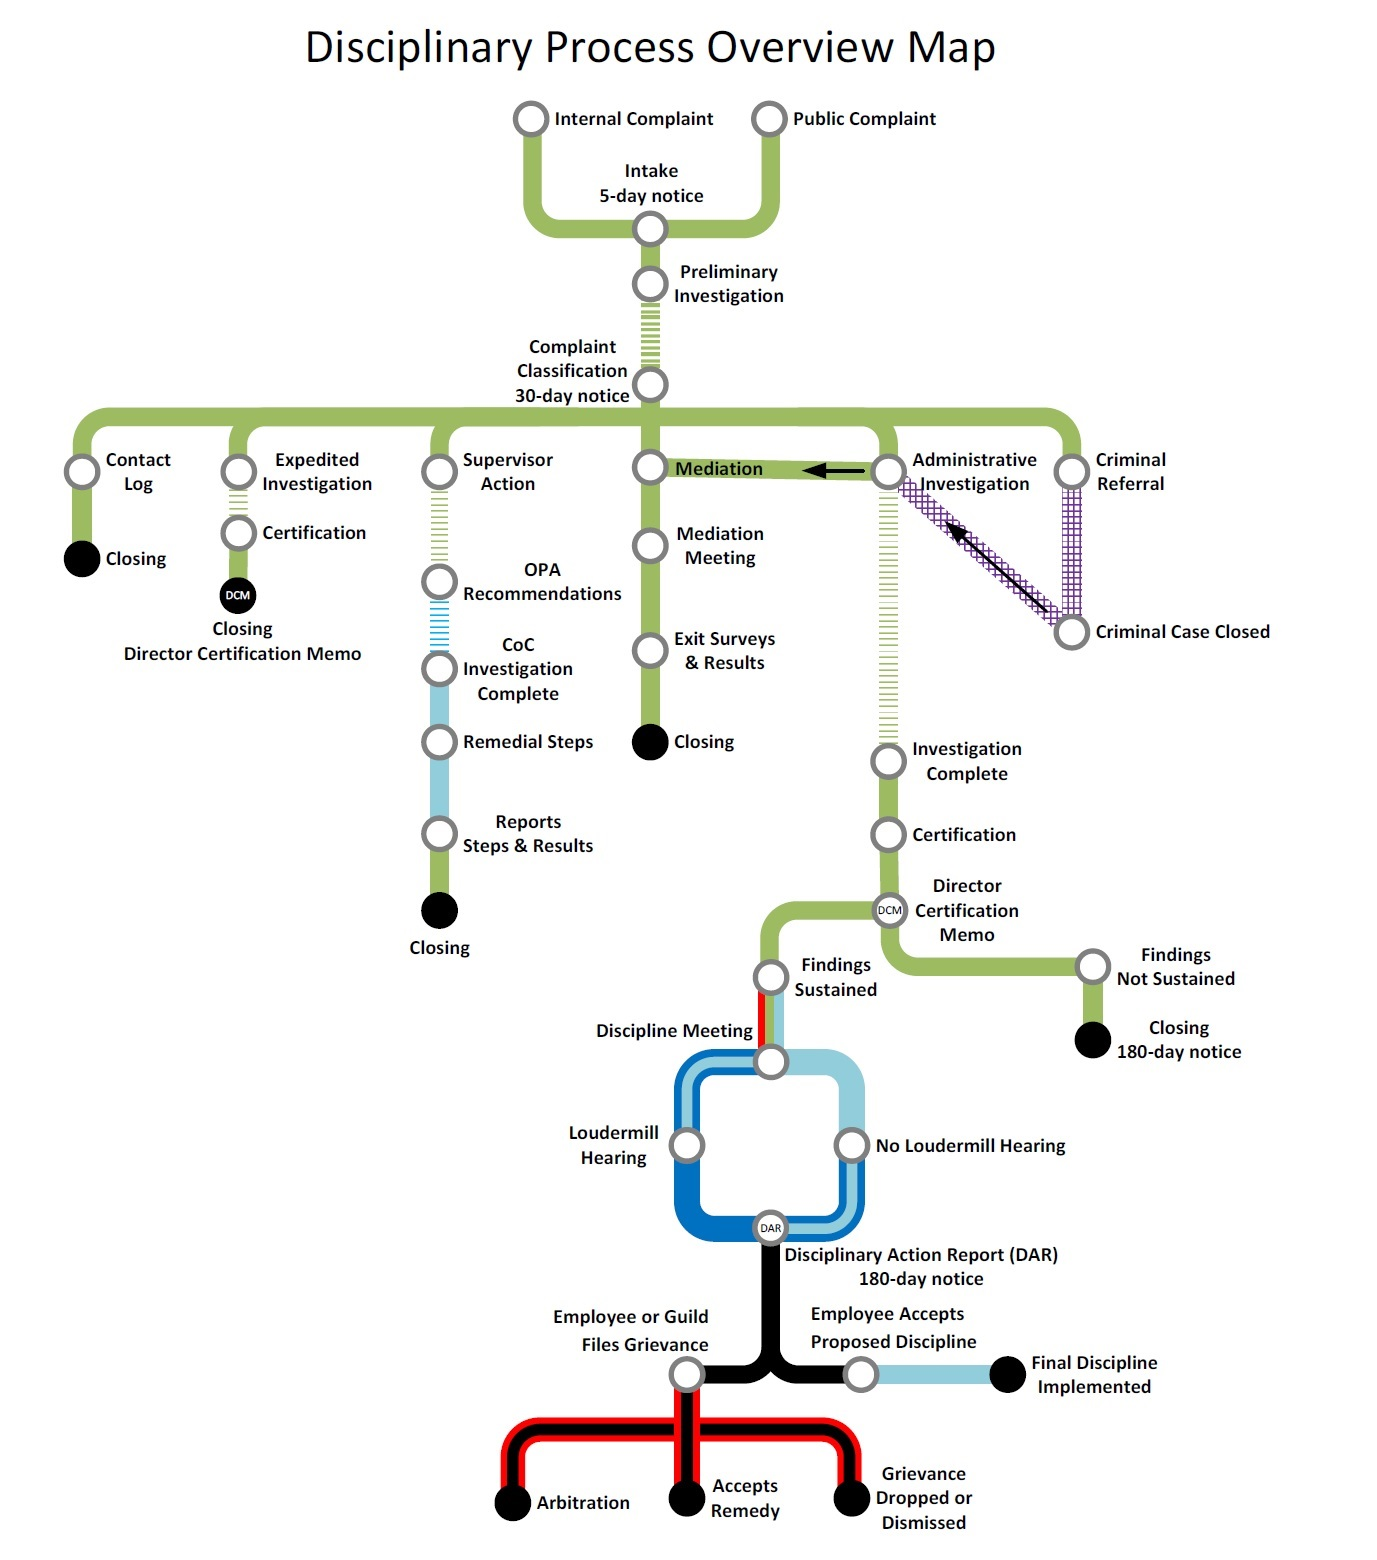 As A Subway Map.Here S What The Spd Disciplinary Process Looks Like As A Subway Map